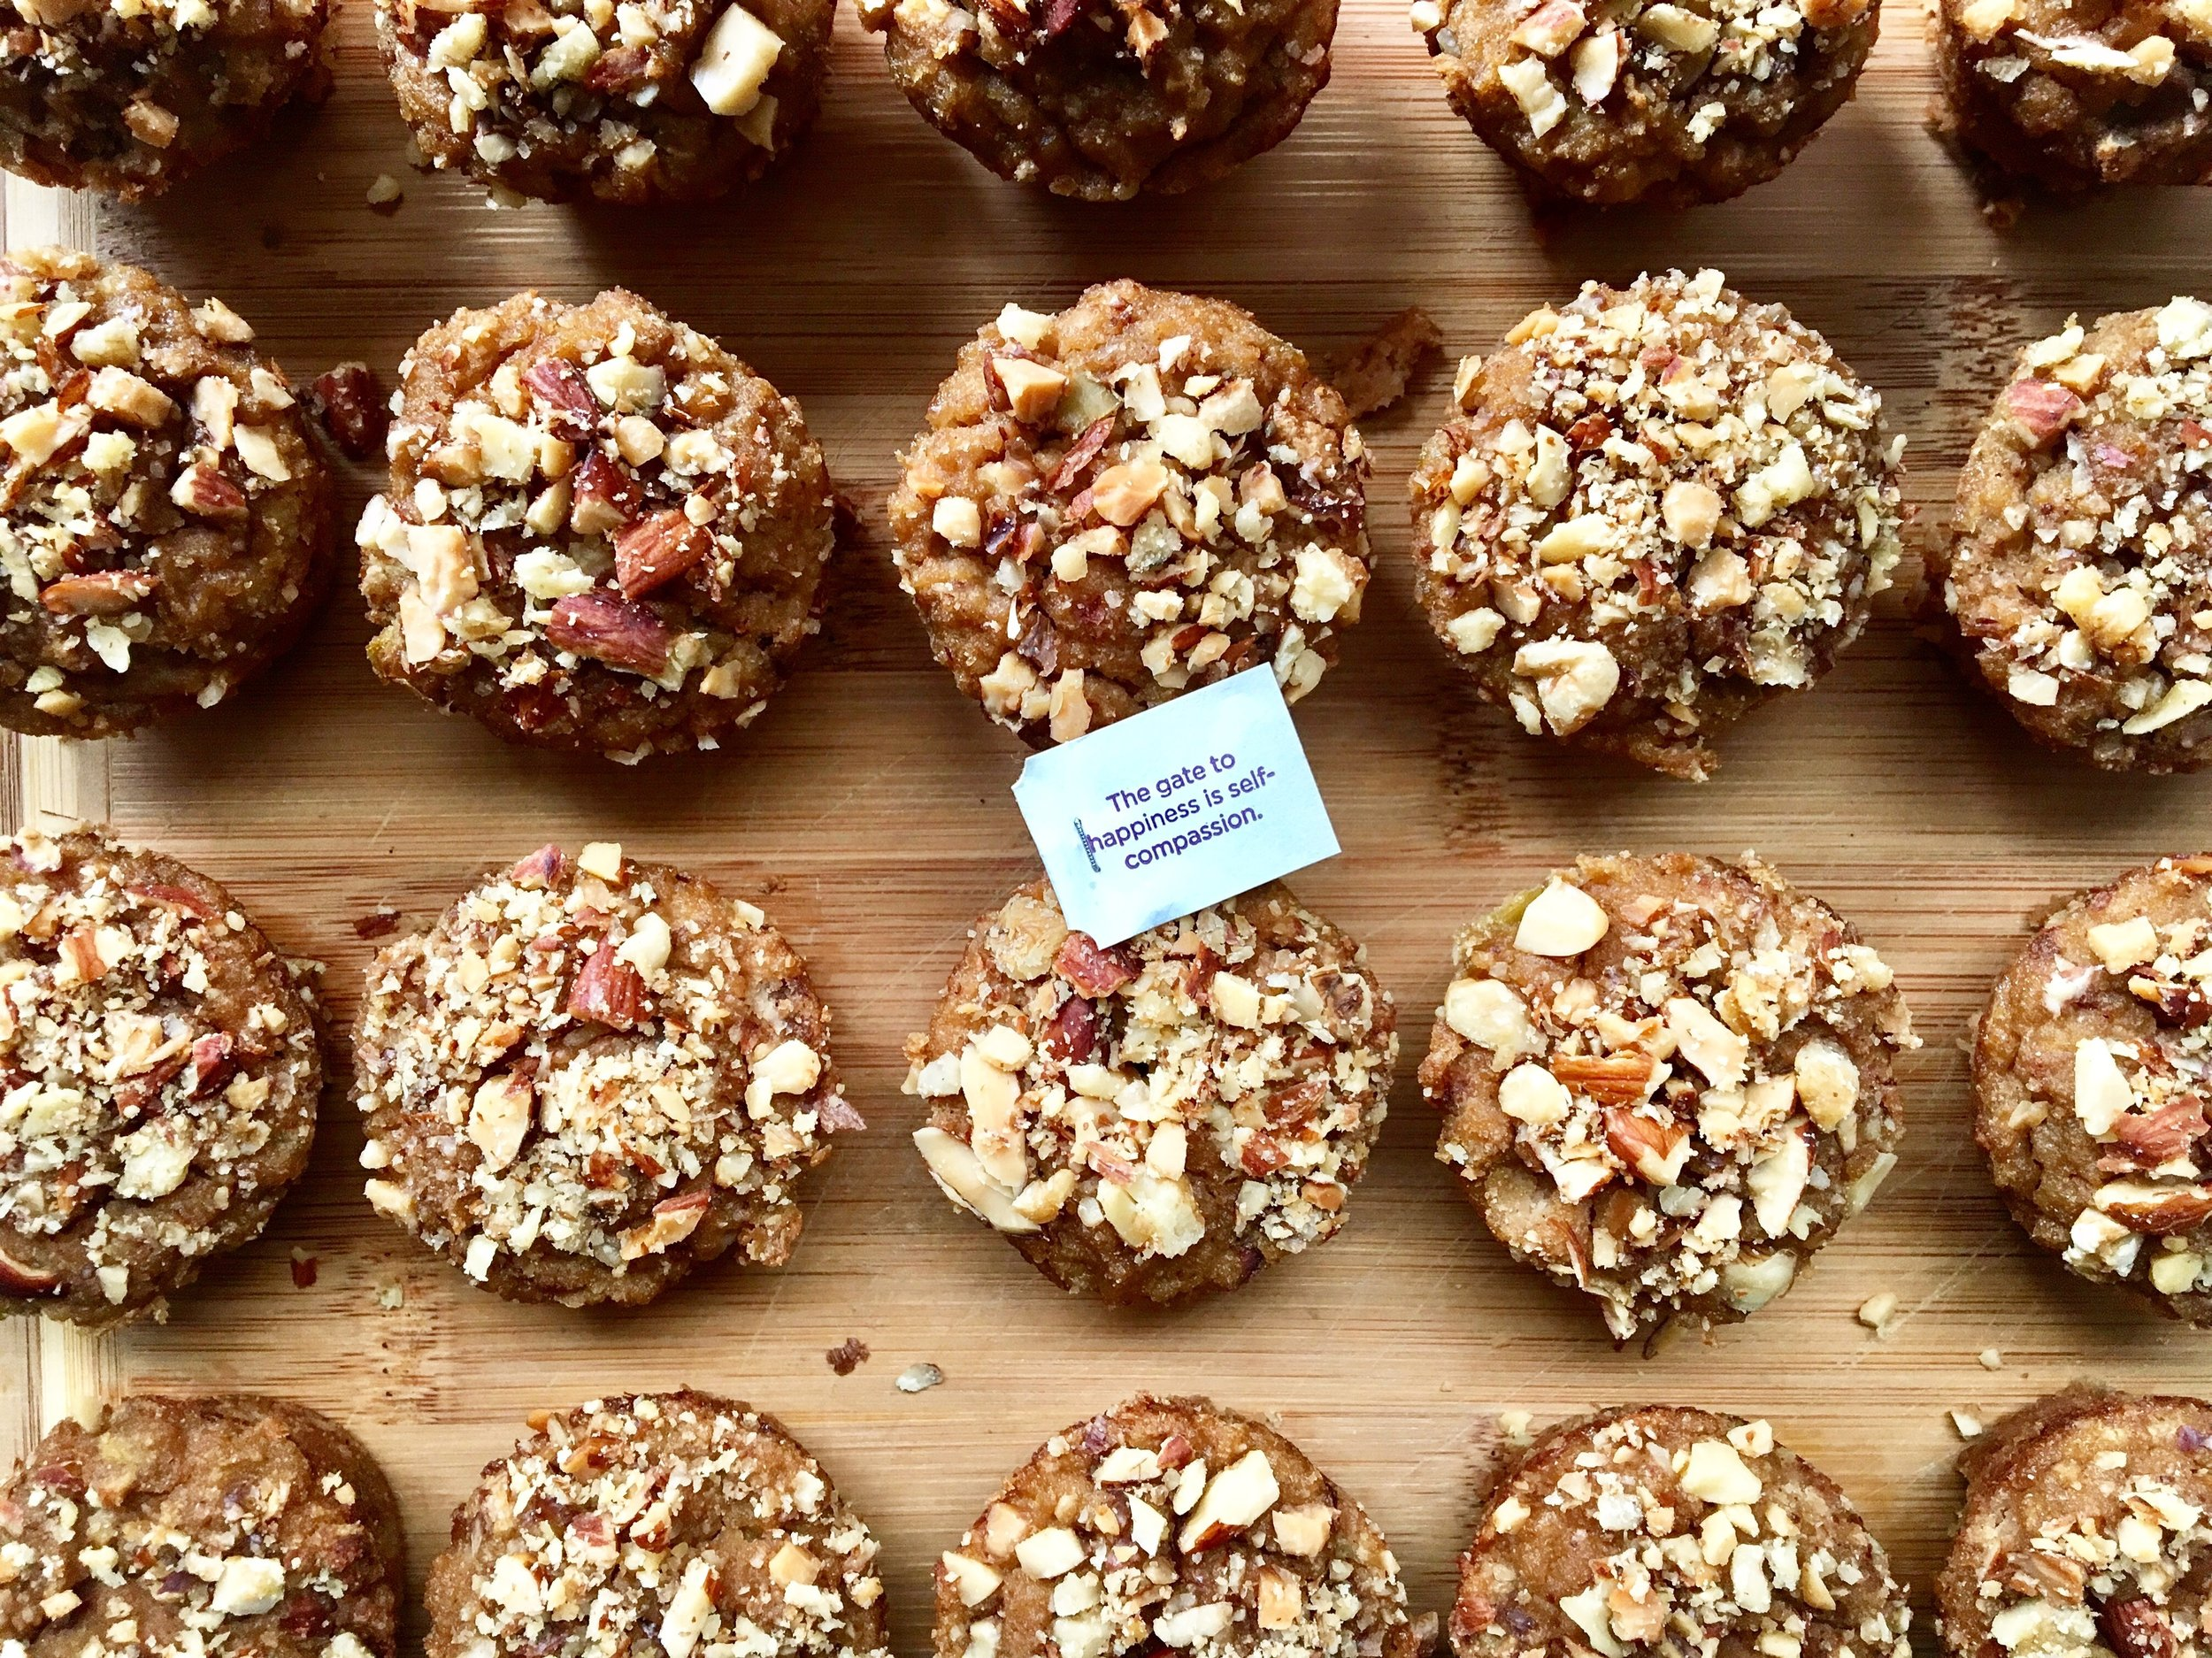 apple muffins with a message